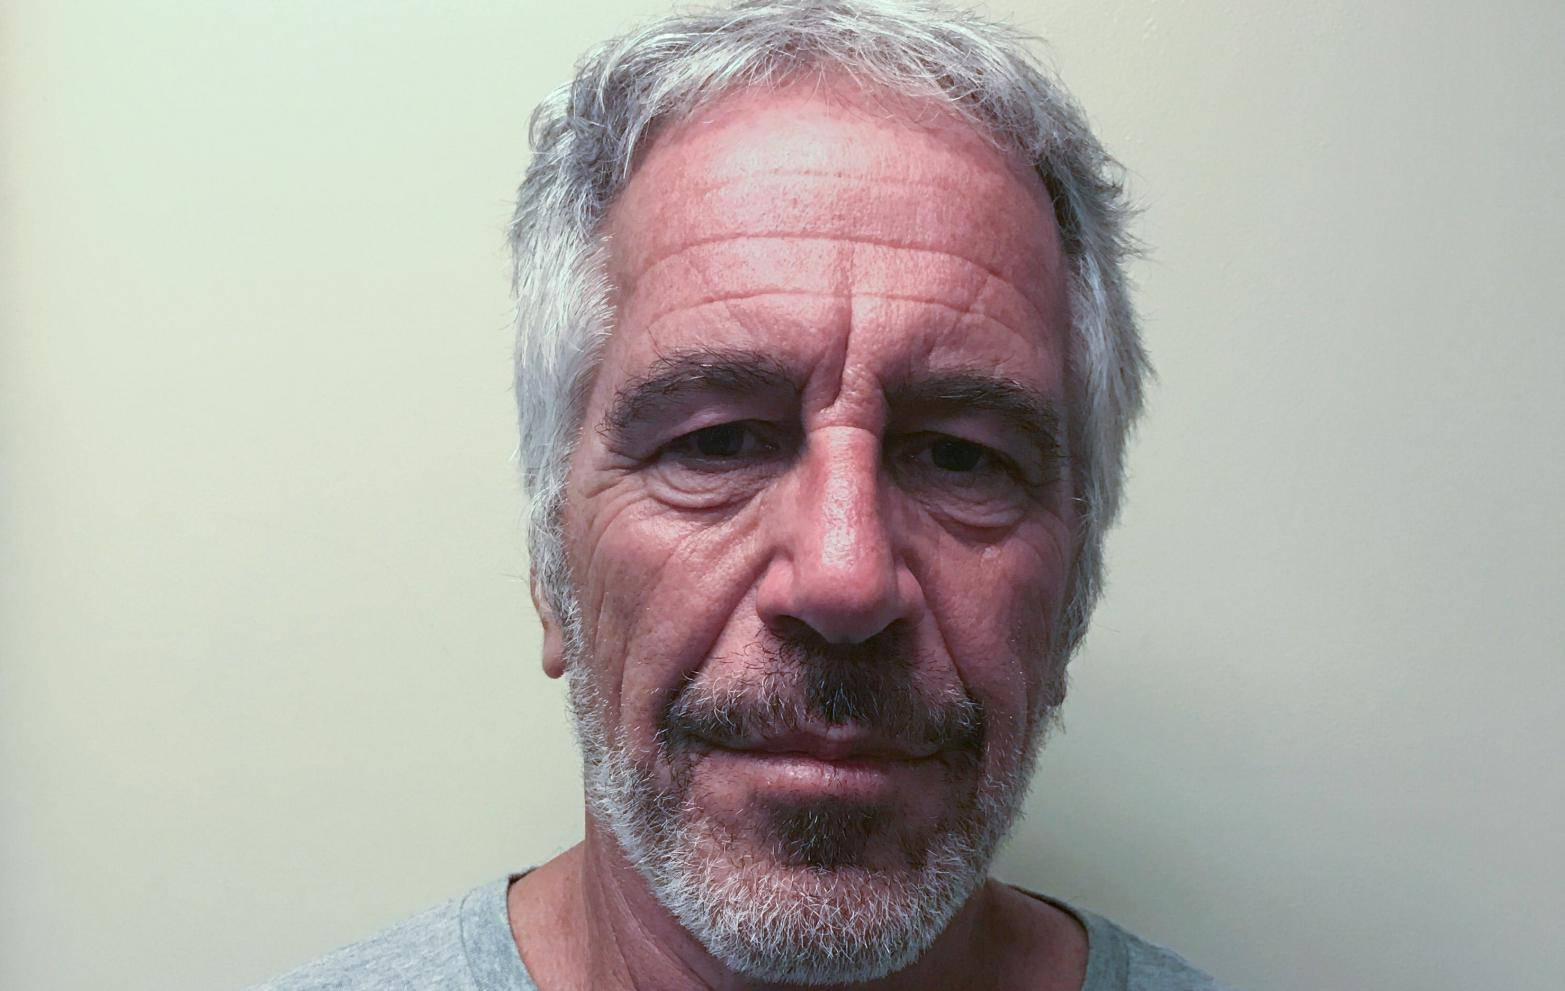 Jeffrey Epstein appears in a photo taken for the NY Division of Criminal Justice Services' sex offender registry